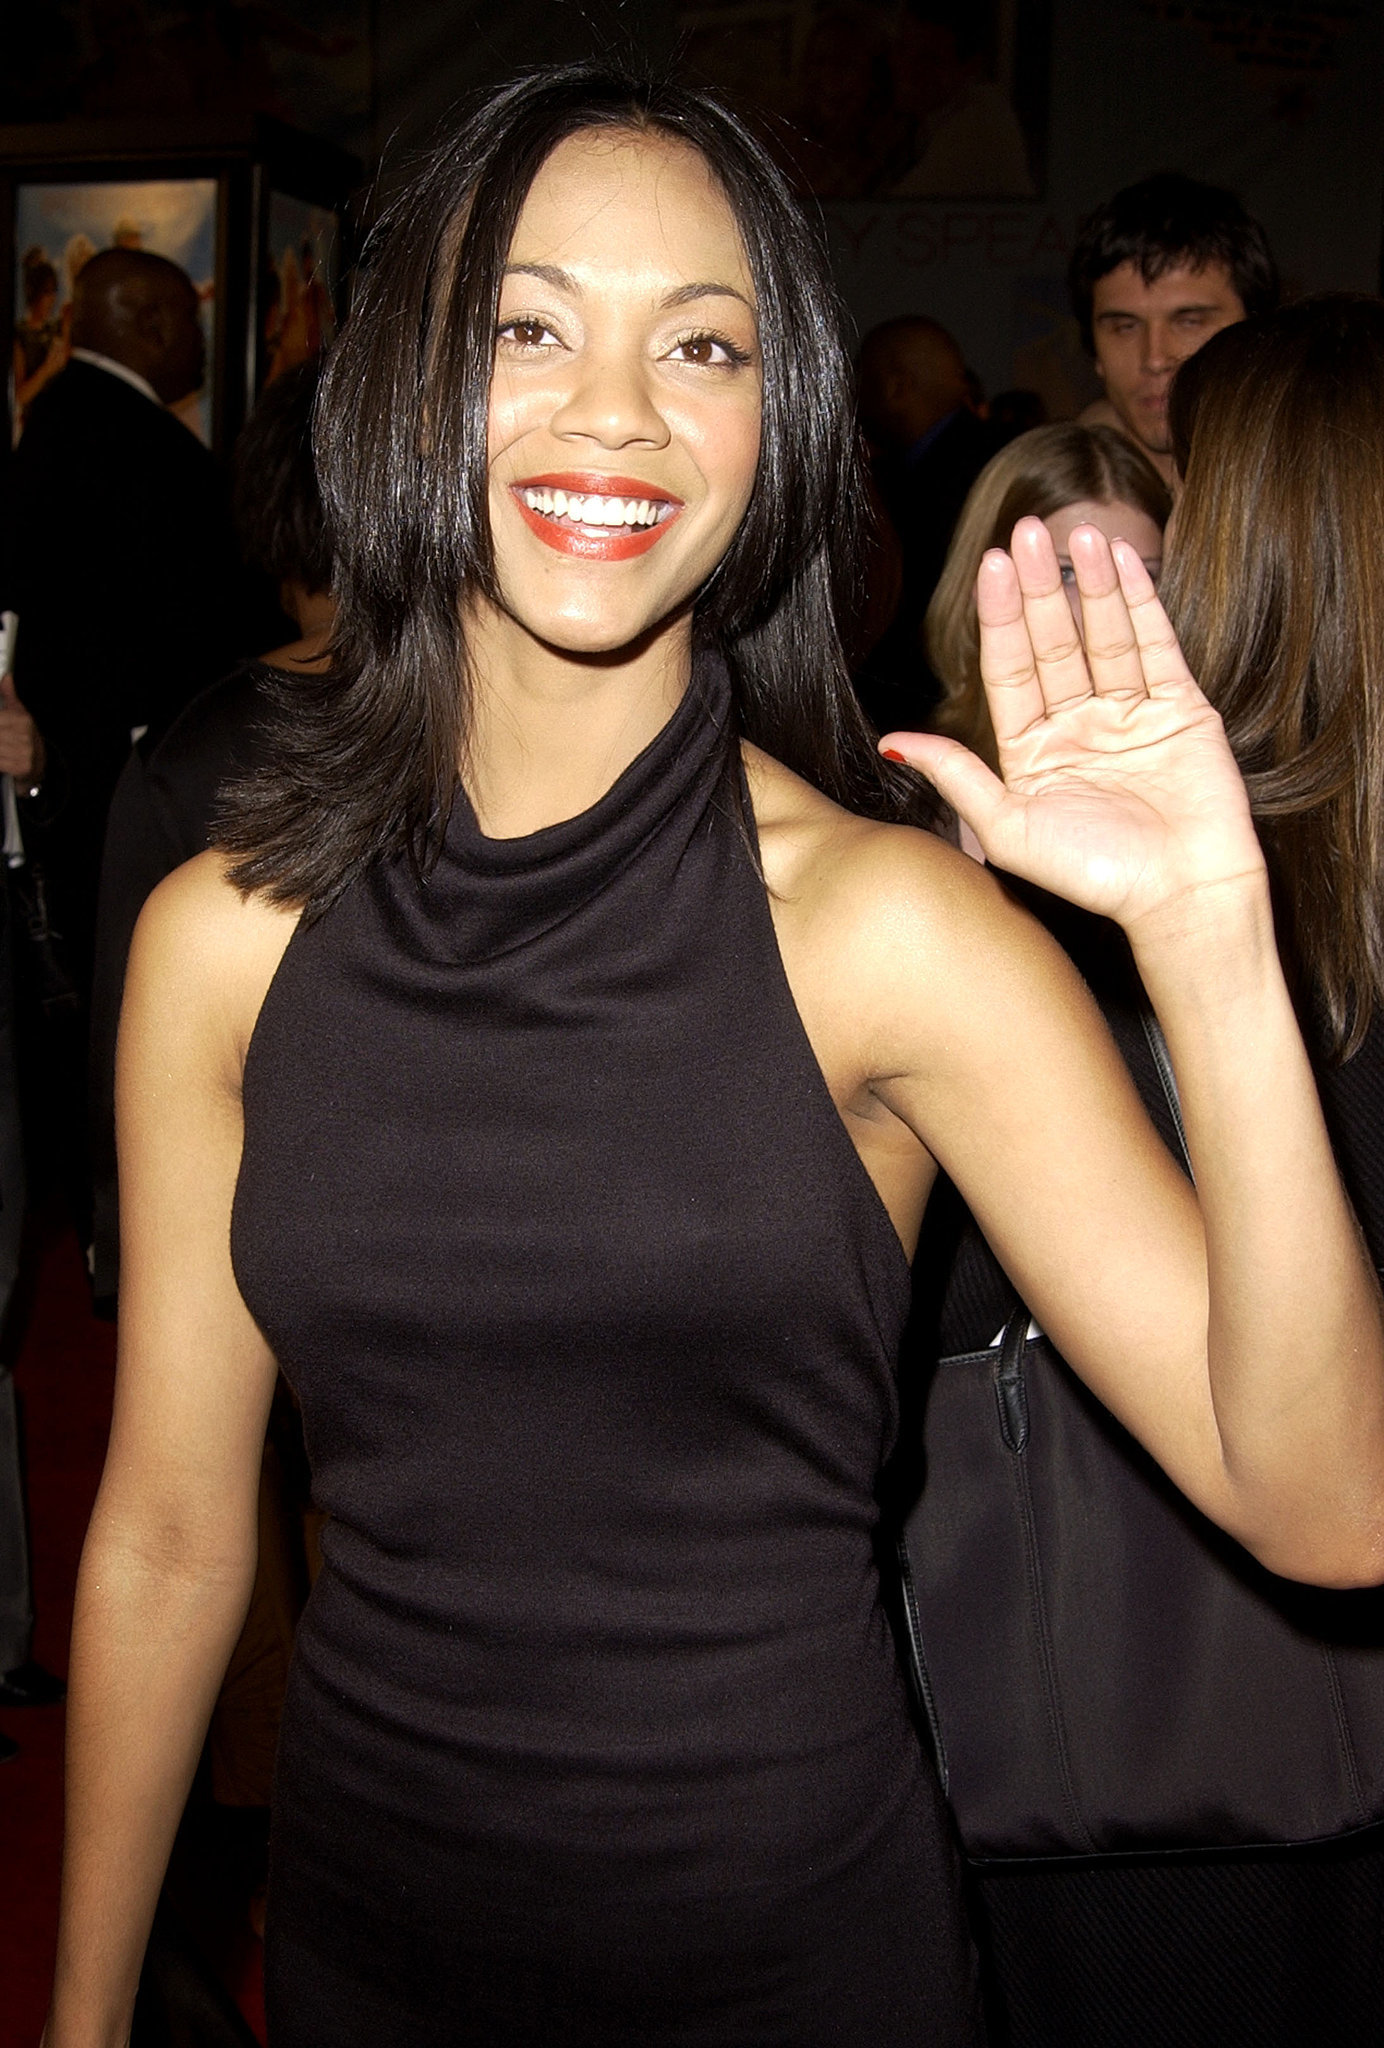 And Zoe Saldana gave a sweet wave to the cameras.